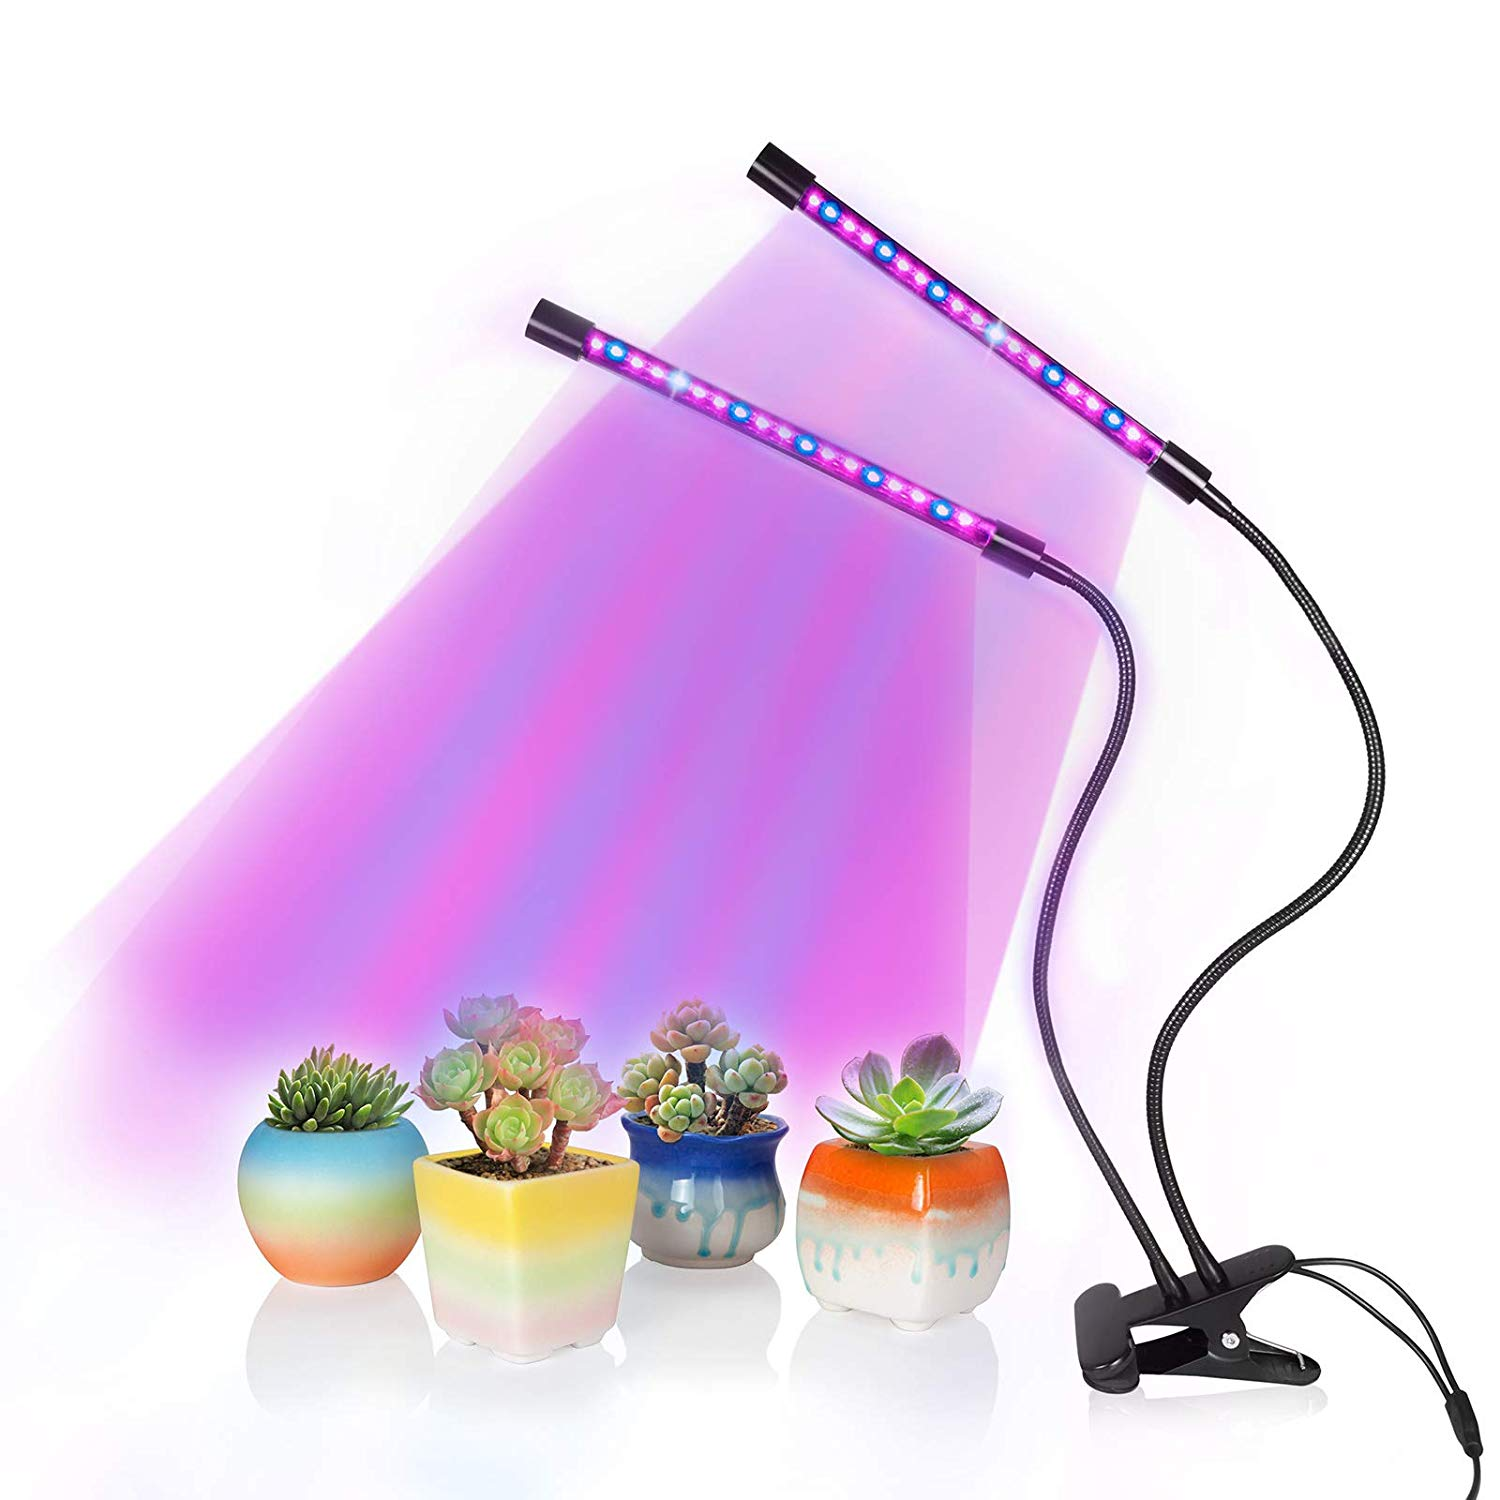 Plant Grows Lamp, SOLOFISH Dual Head 36 LED Full Spectrum Grow Lights with Brightness Adjustable and Timing Function for Plants Hydroponics Greenhouse Garden Home Office